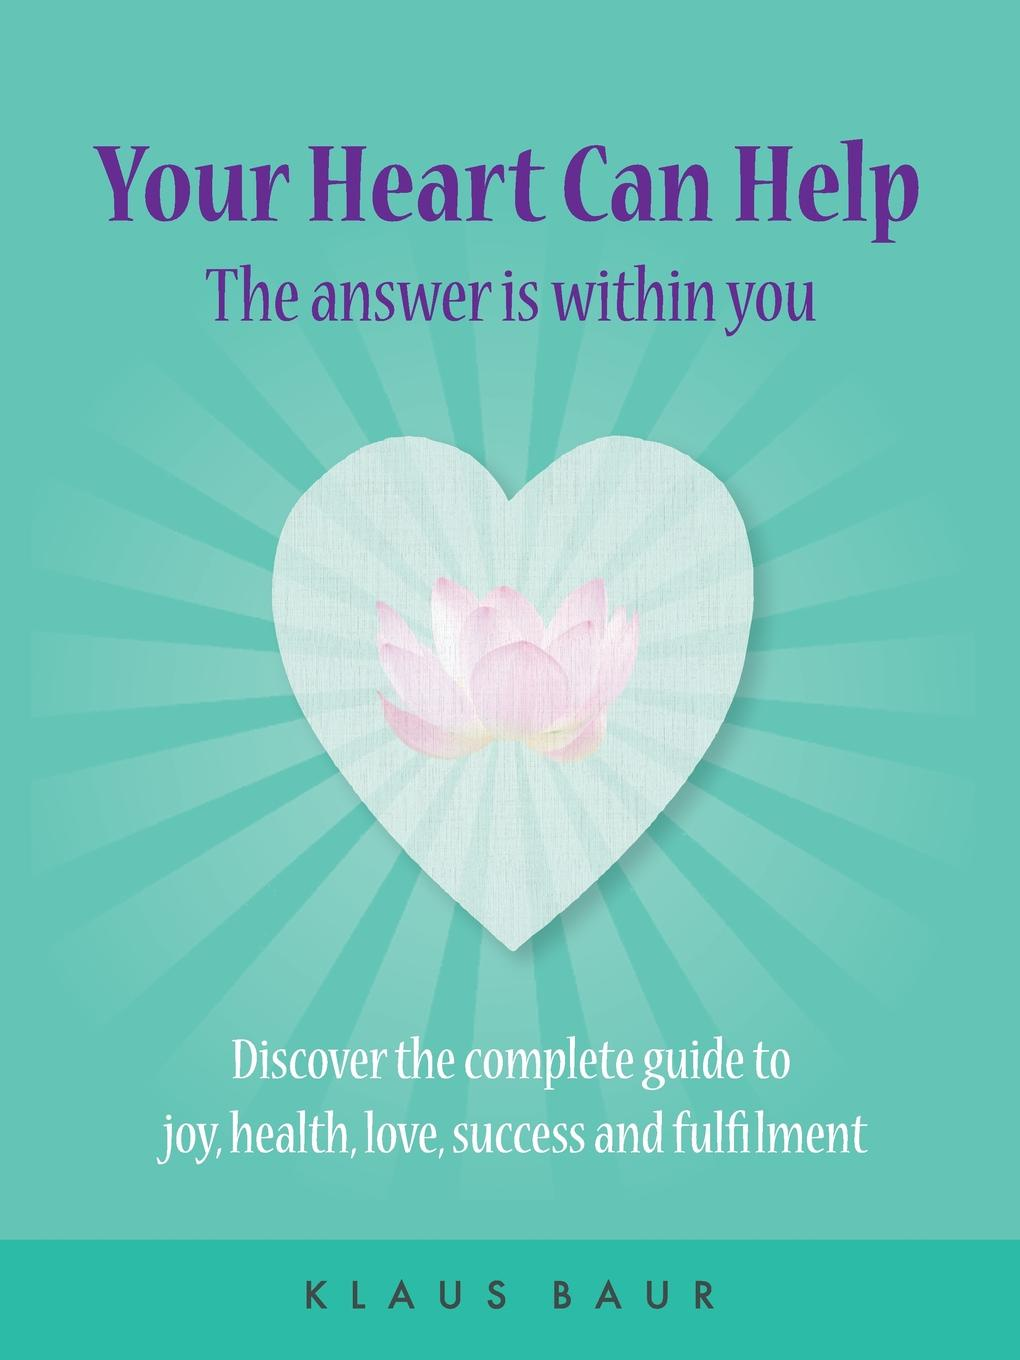 Klaus Baur Your Heart Can Help - The Answer Is Within You. Discover the complete guide to joy, health, love, success and fulfilment creativity in life is directed by the heart